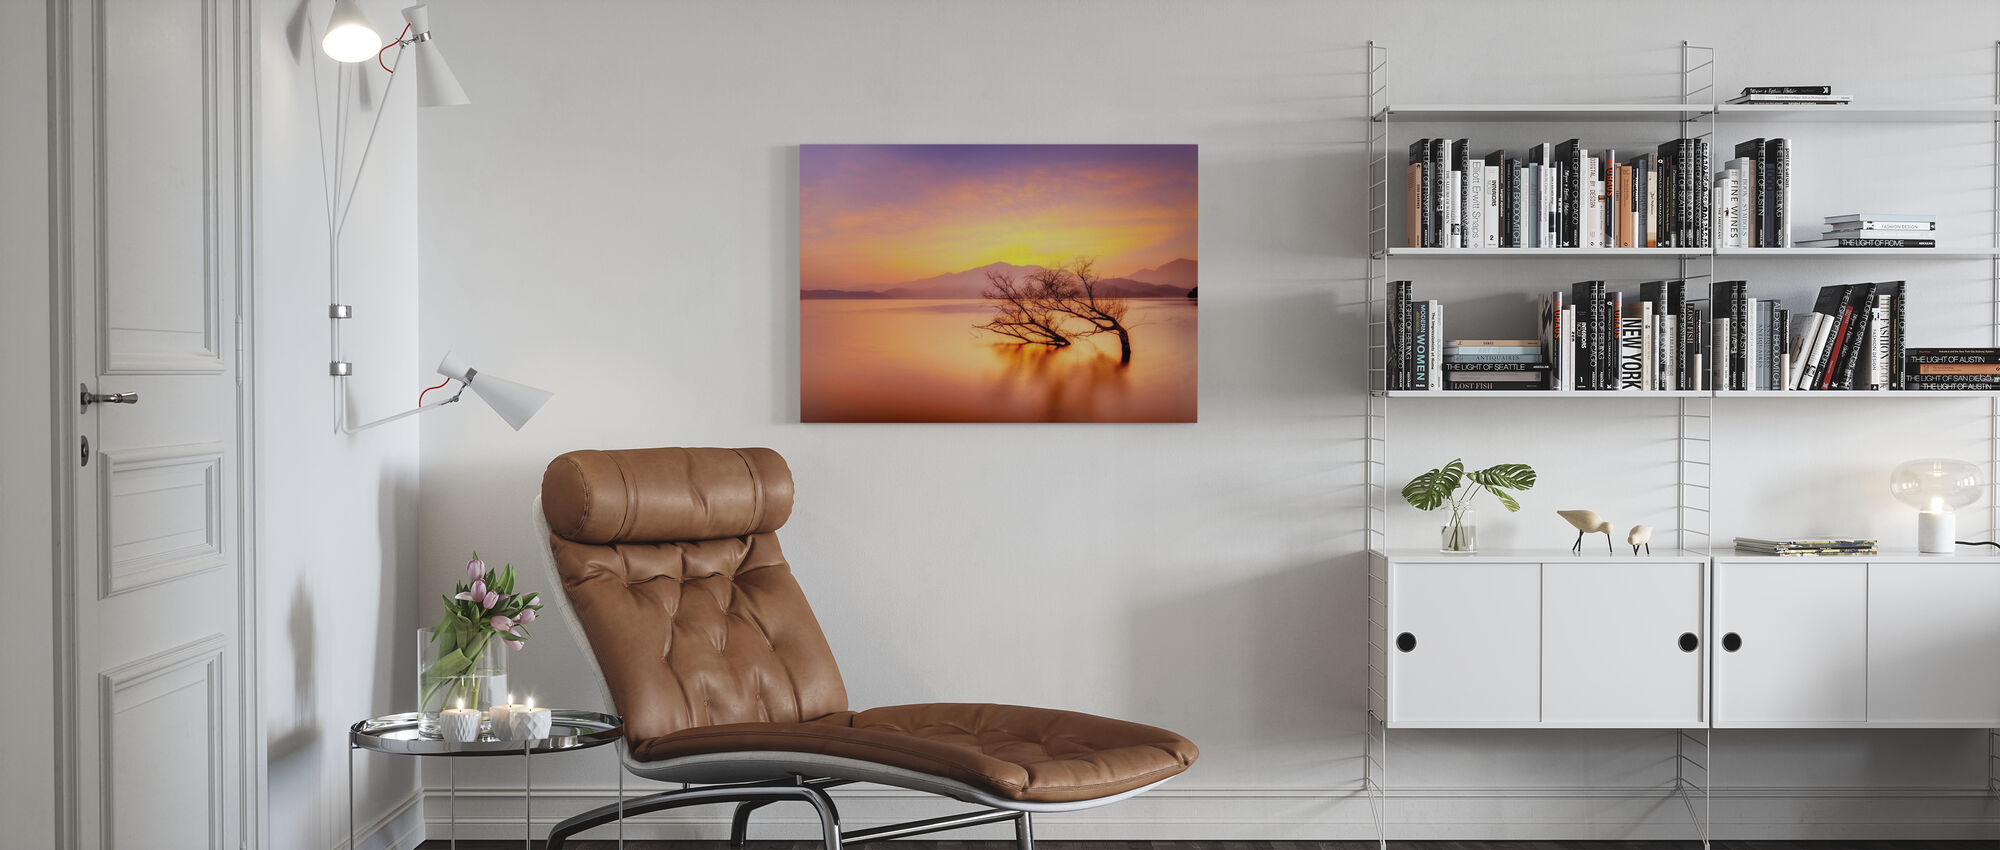 Rosy Sunset over Lake - Canvas print - Living Room